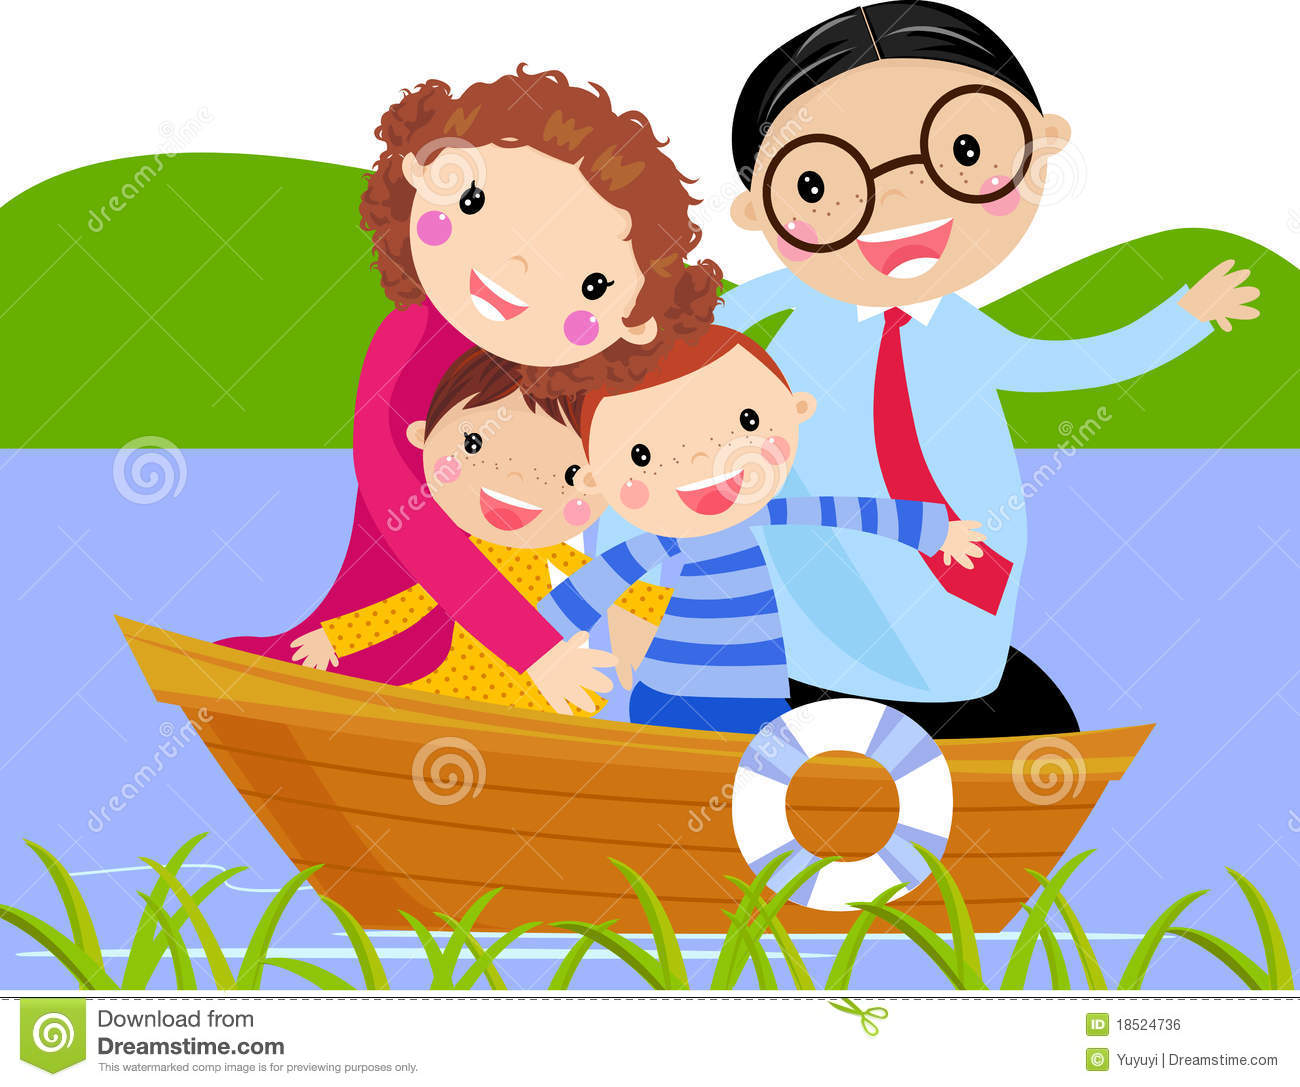 Family In Boat Royalty Free Stock Image - Image: 18524736